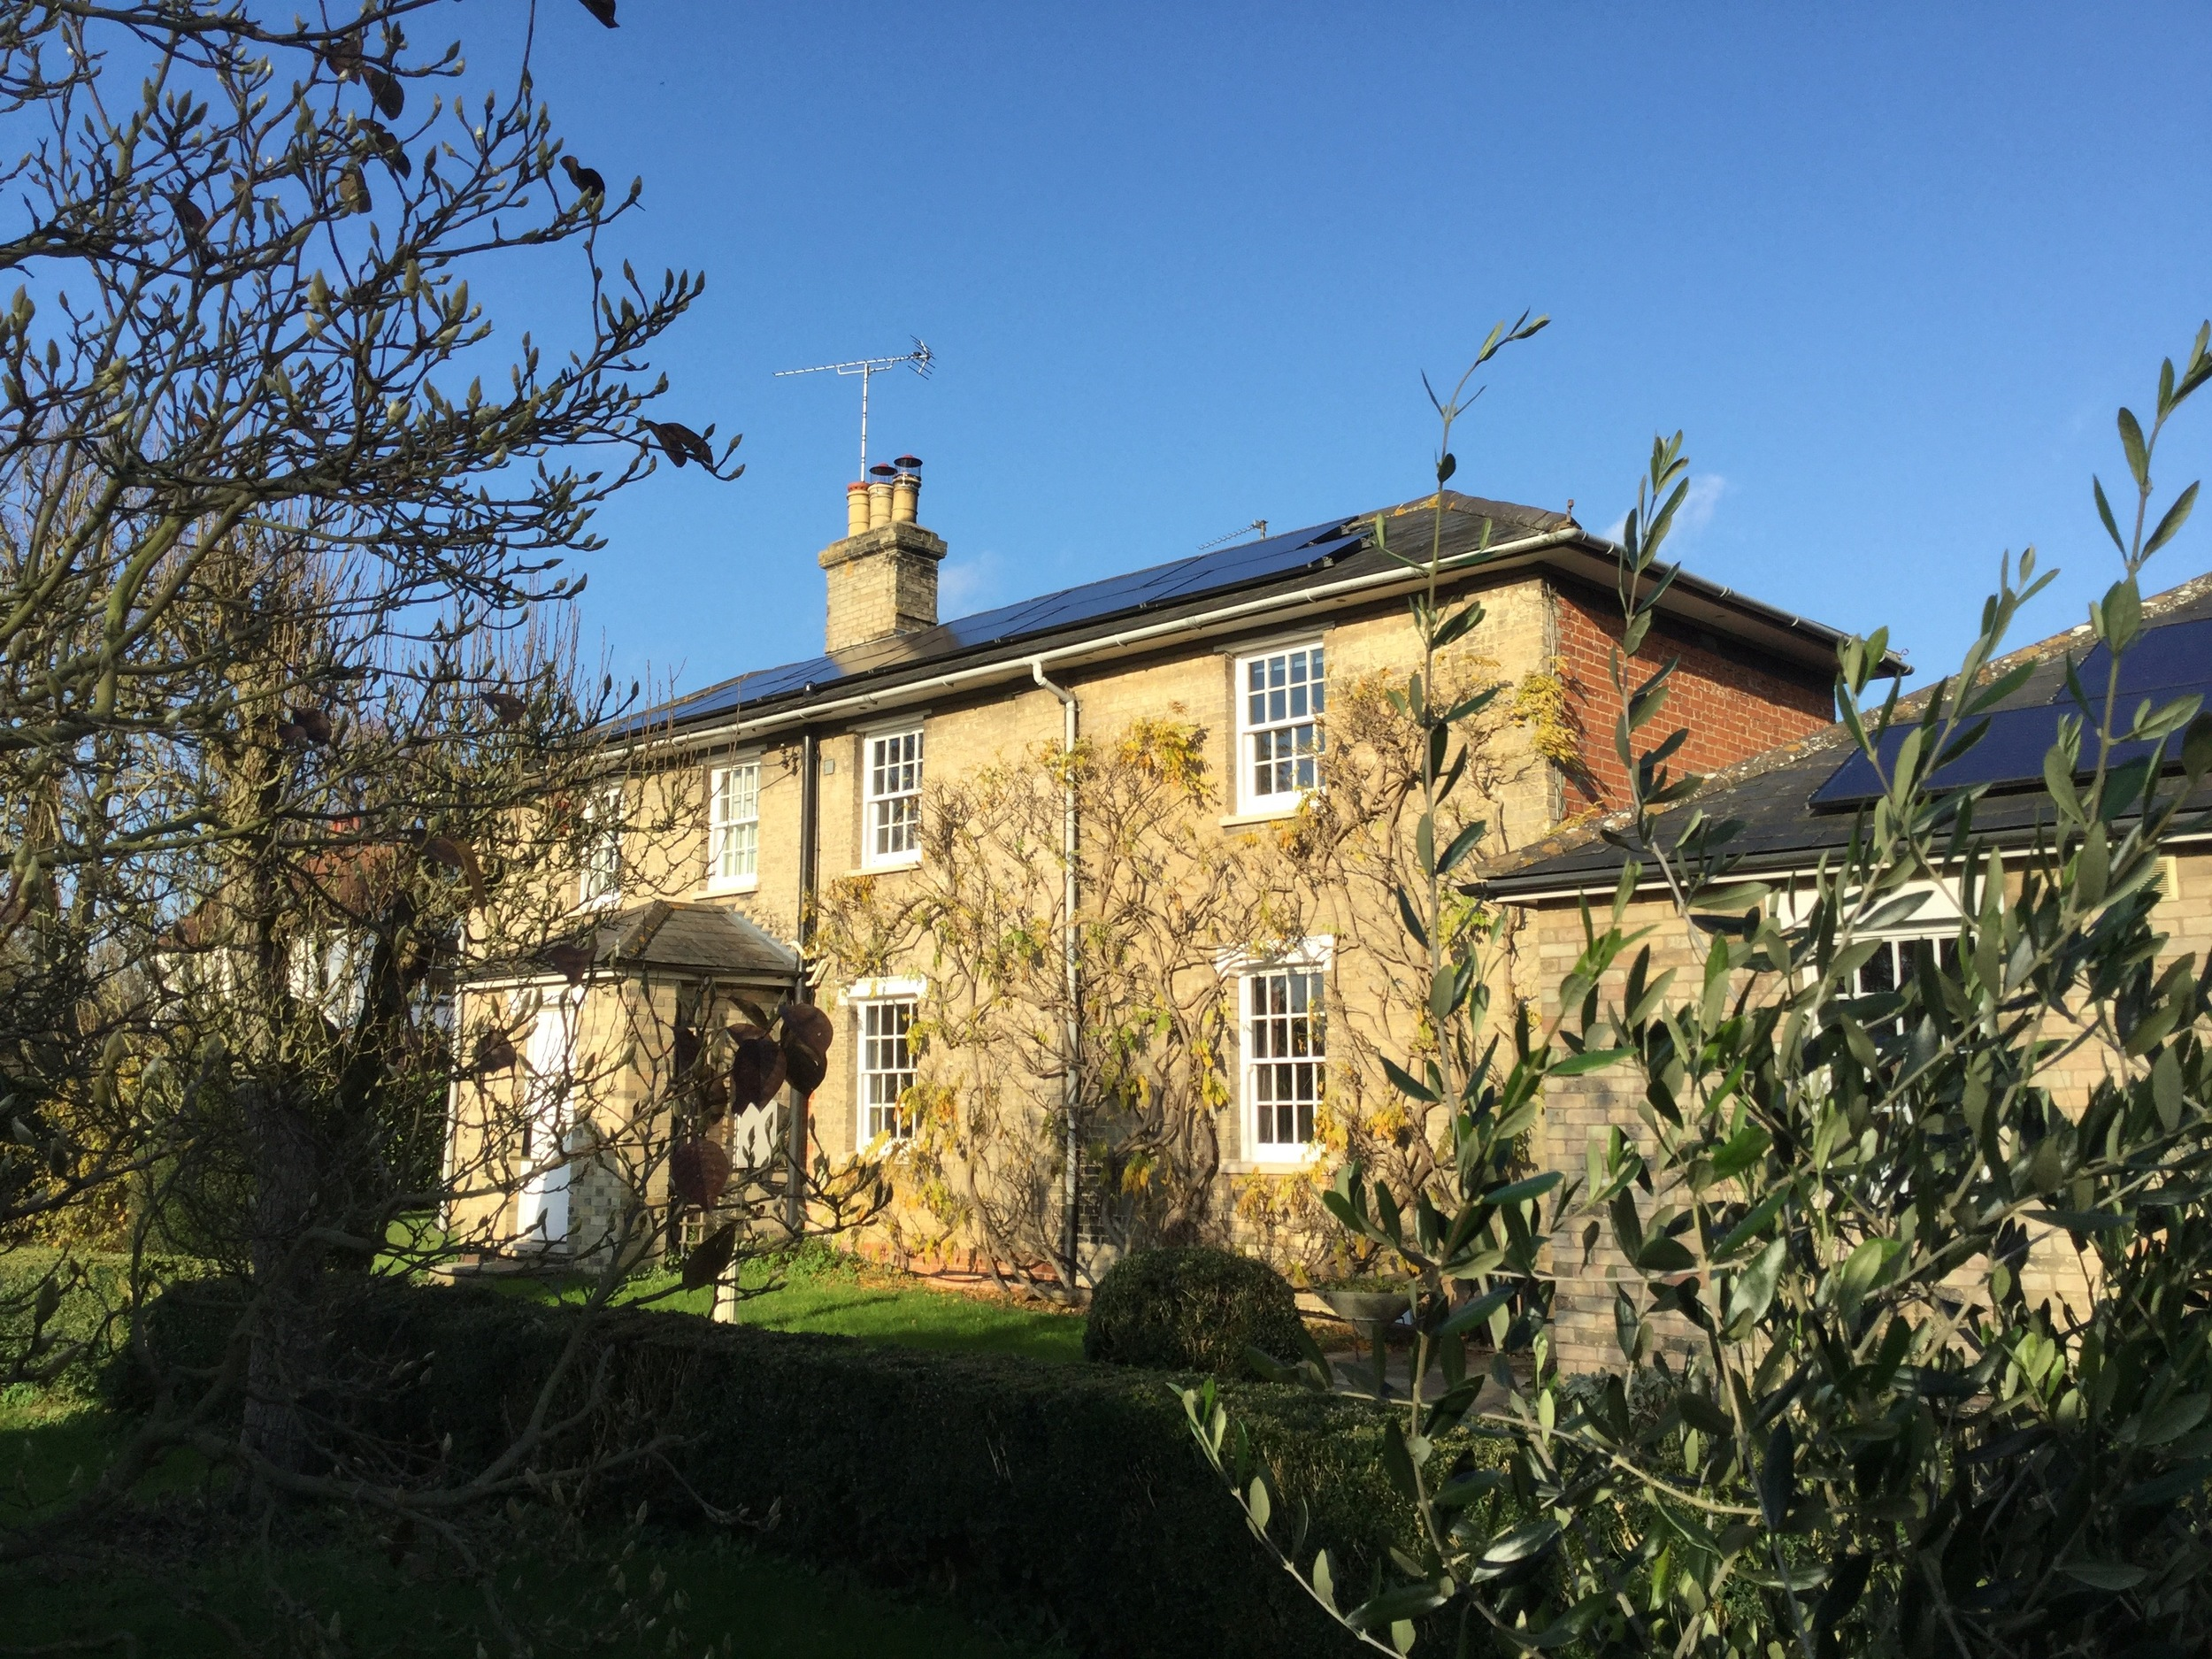 Join us for coffee at our offices in East Bergholt in the heart of Constable Country, complete with photovoltaic cells for generating our power.